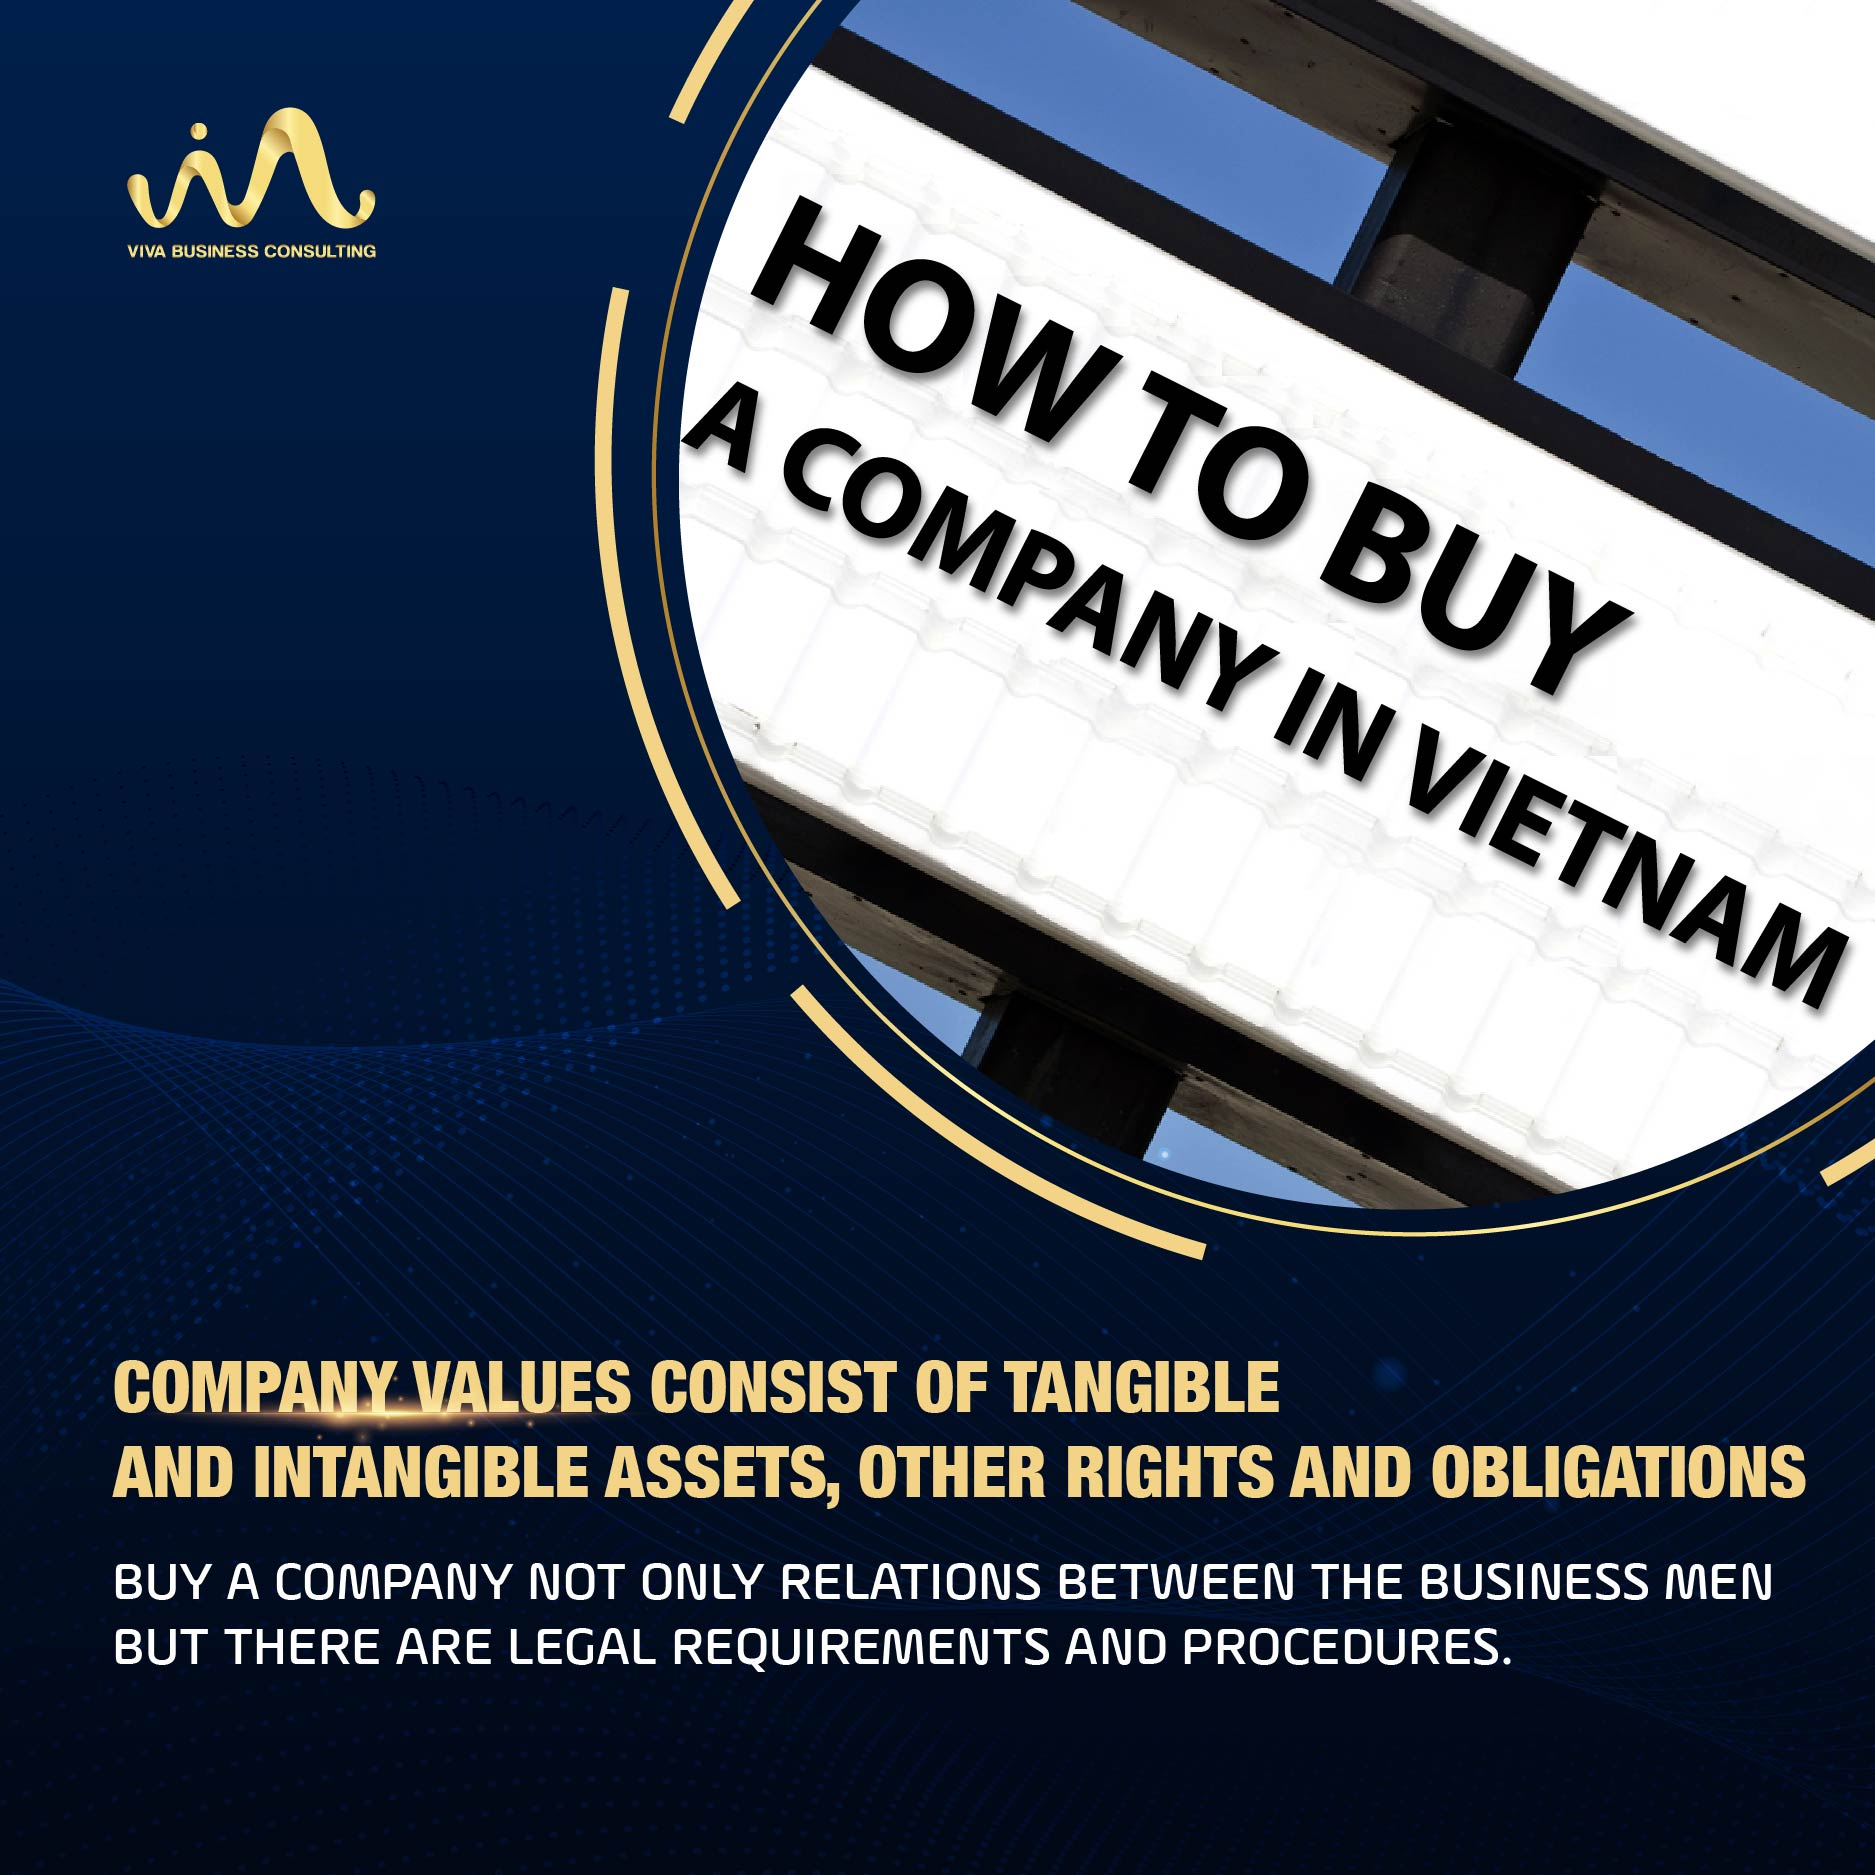 How to buy a company in Vietnam